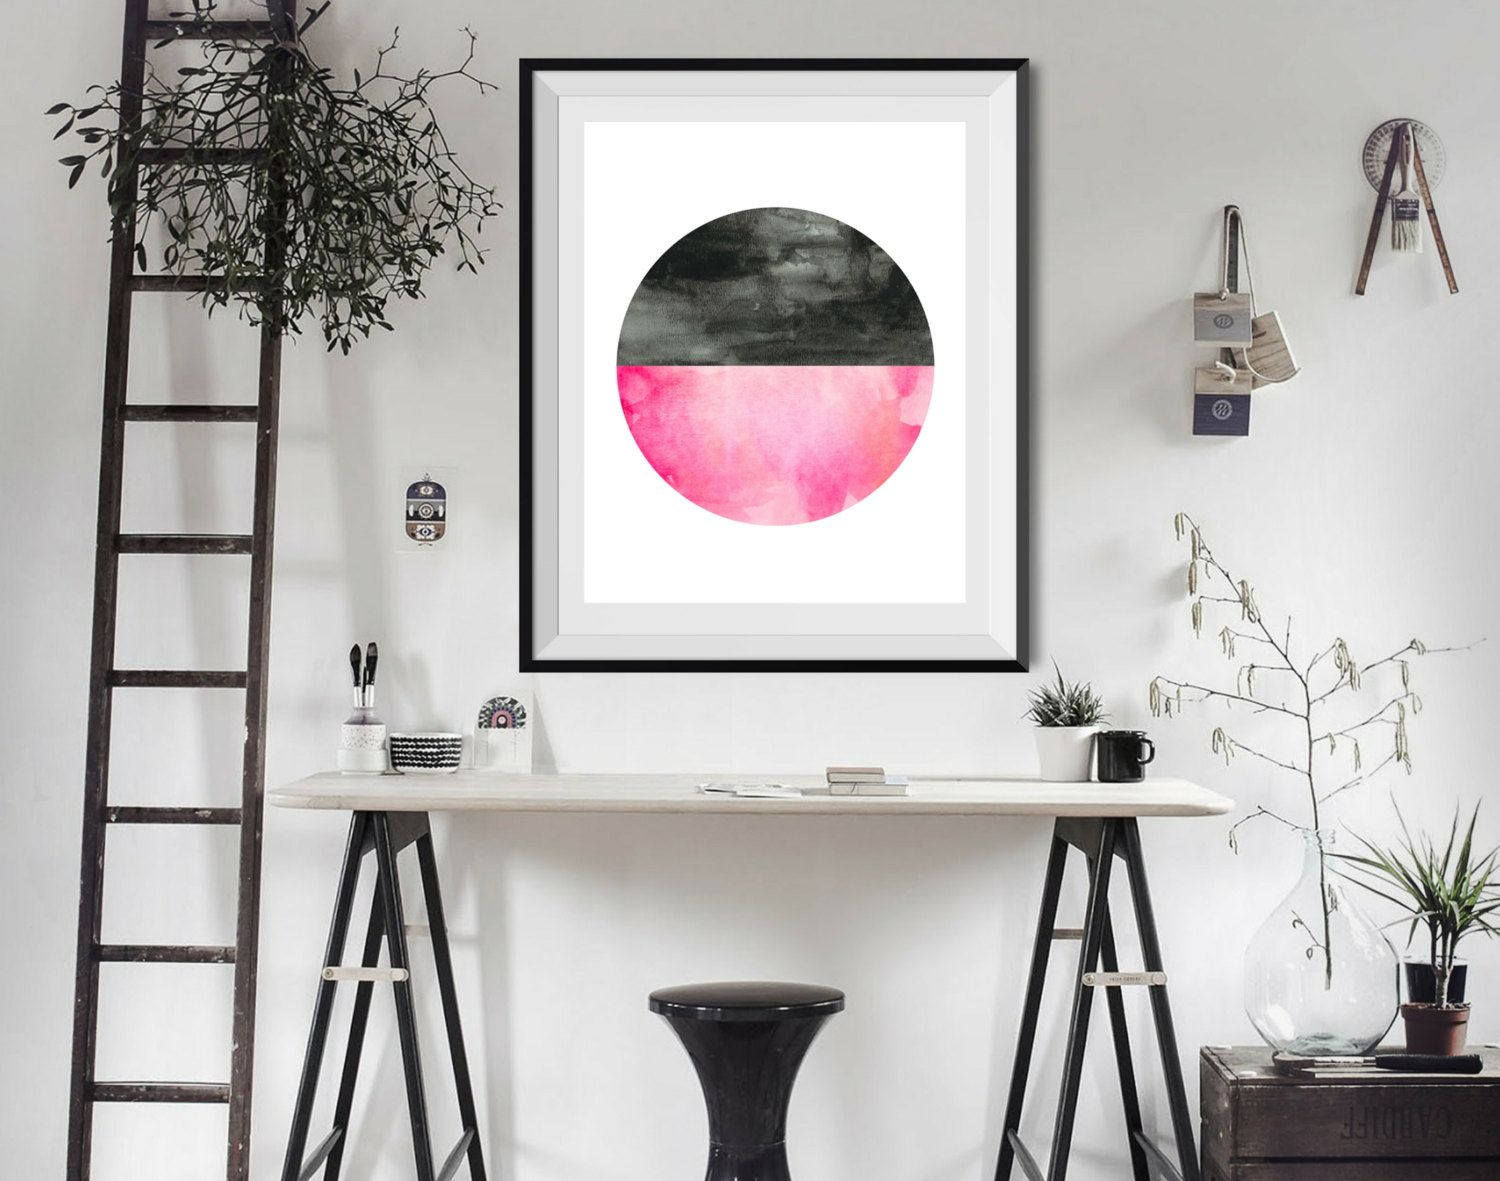 Art Print, FREE Shipping, Watercolor Art, Abstract Art, Geometric Art, Modern Art, Circle Art, Scandinavian Design, Black/Pink, 8x10, 11x14 by BrightAndBonny on Etsy